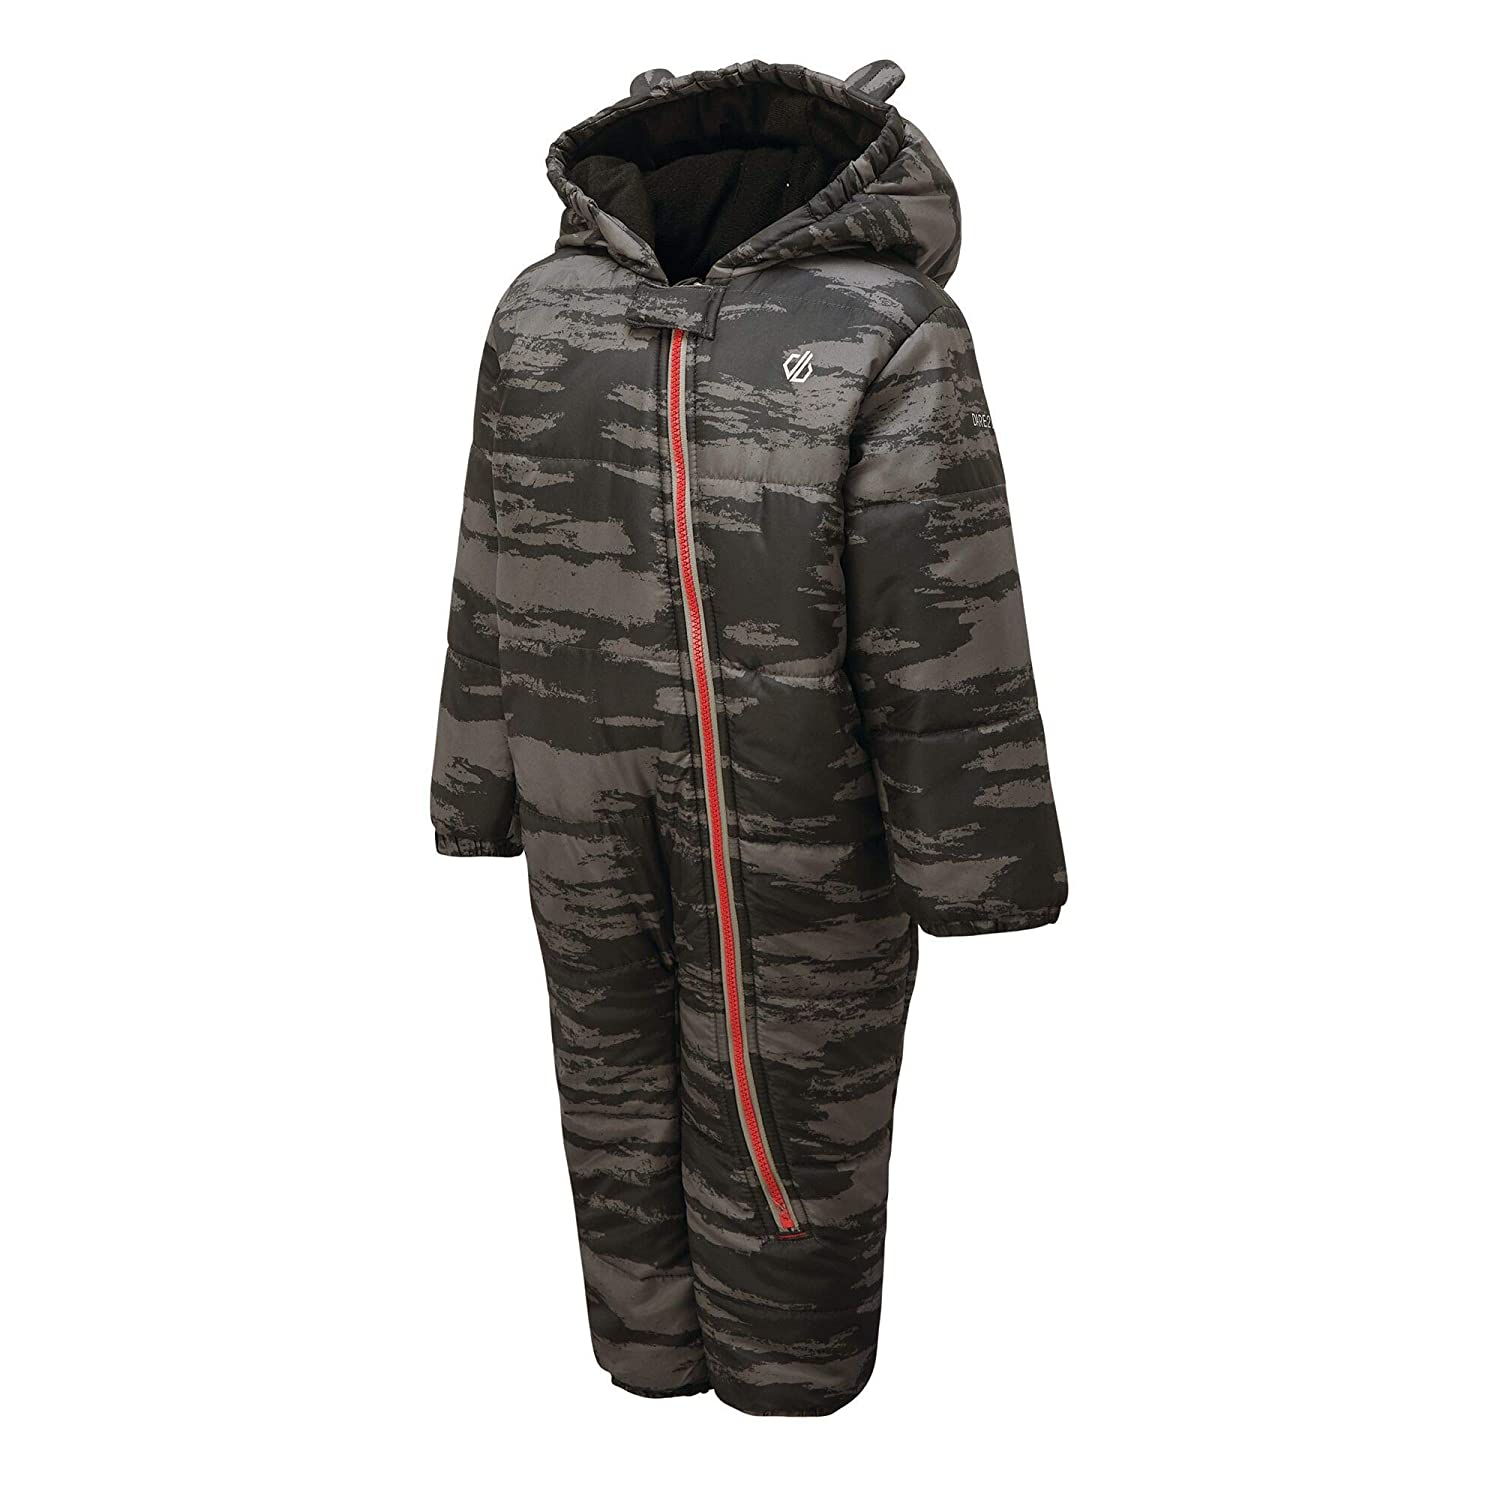 Dare 2B Bambino Waterproof /& Breathable High Insulated Hooded Character Rain /& Snowsuit with Side Leg Access And Integrated Snow Gaiters Salopette